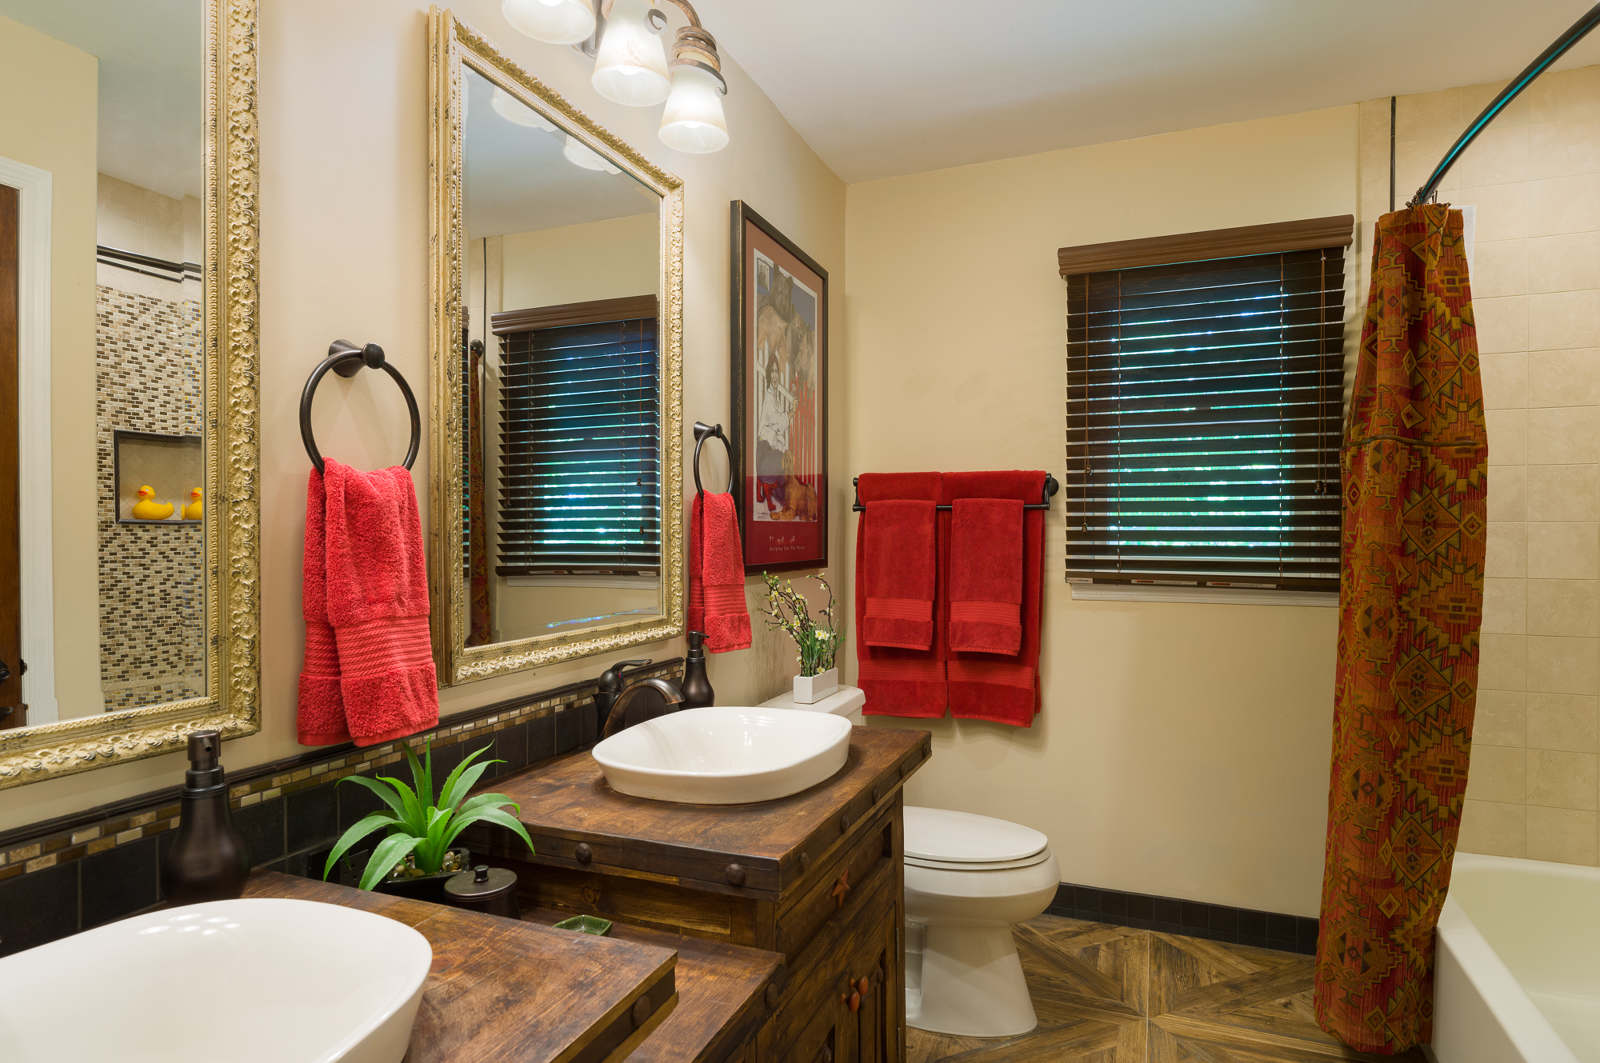 If you're not ready for full-on color try some red accents like we did in this rustic bathroom. By Ella Design Group.